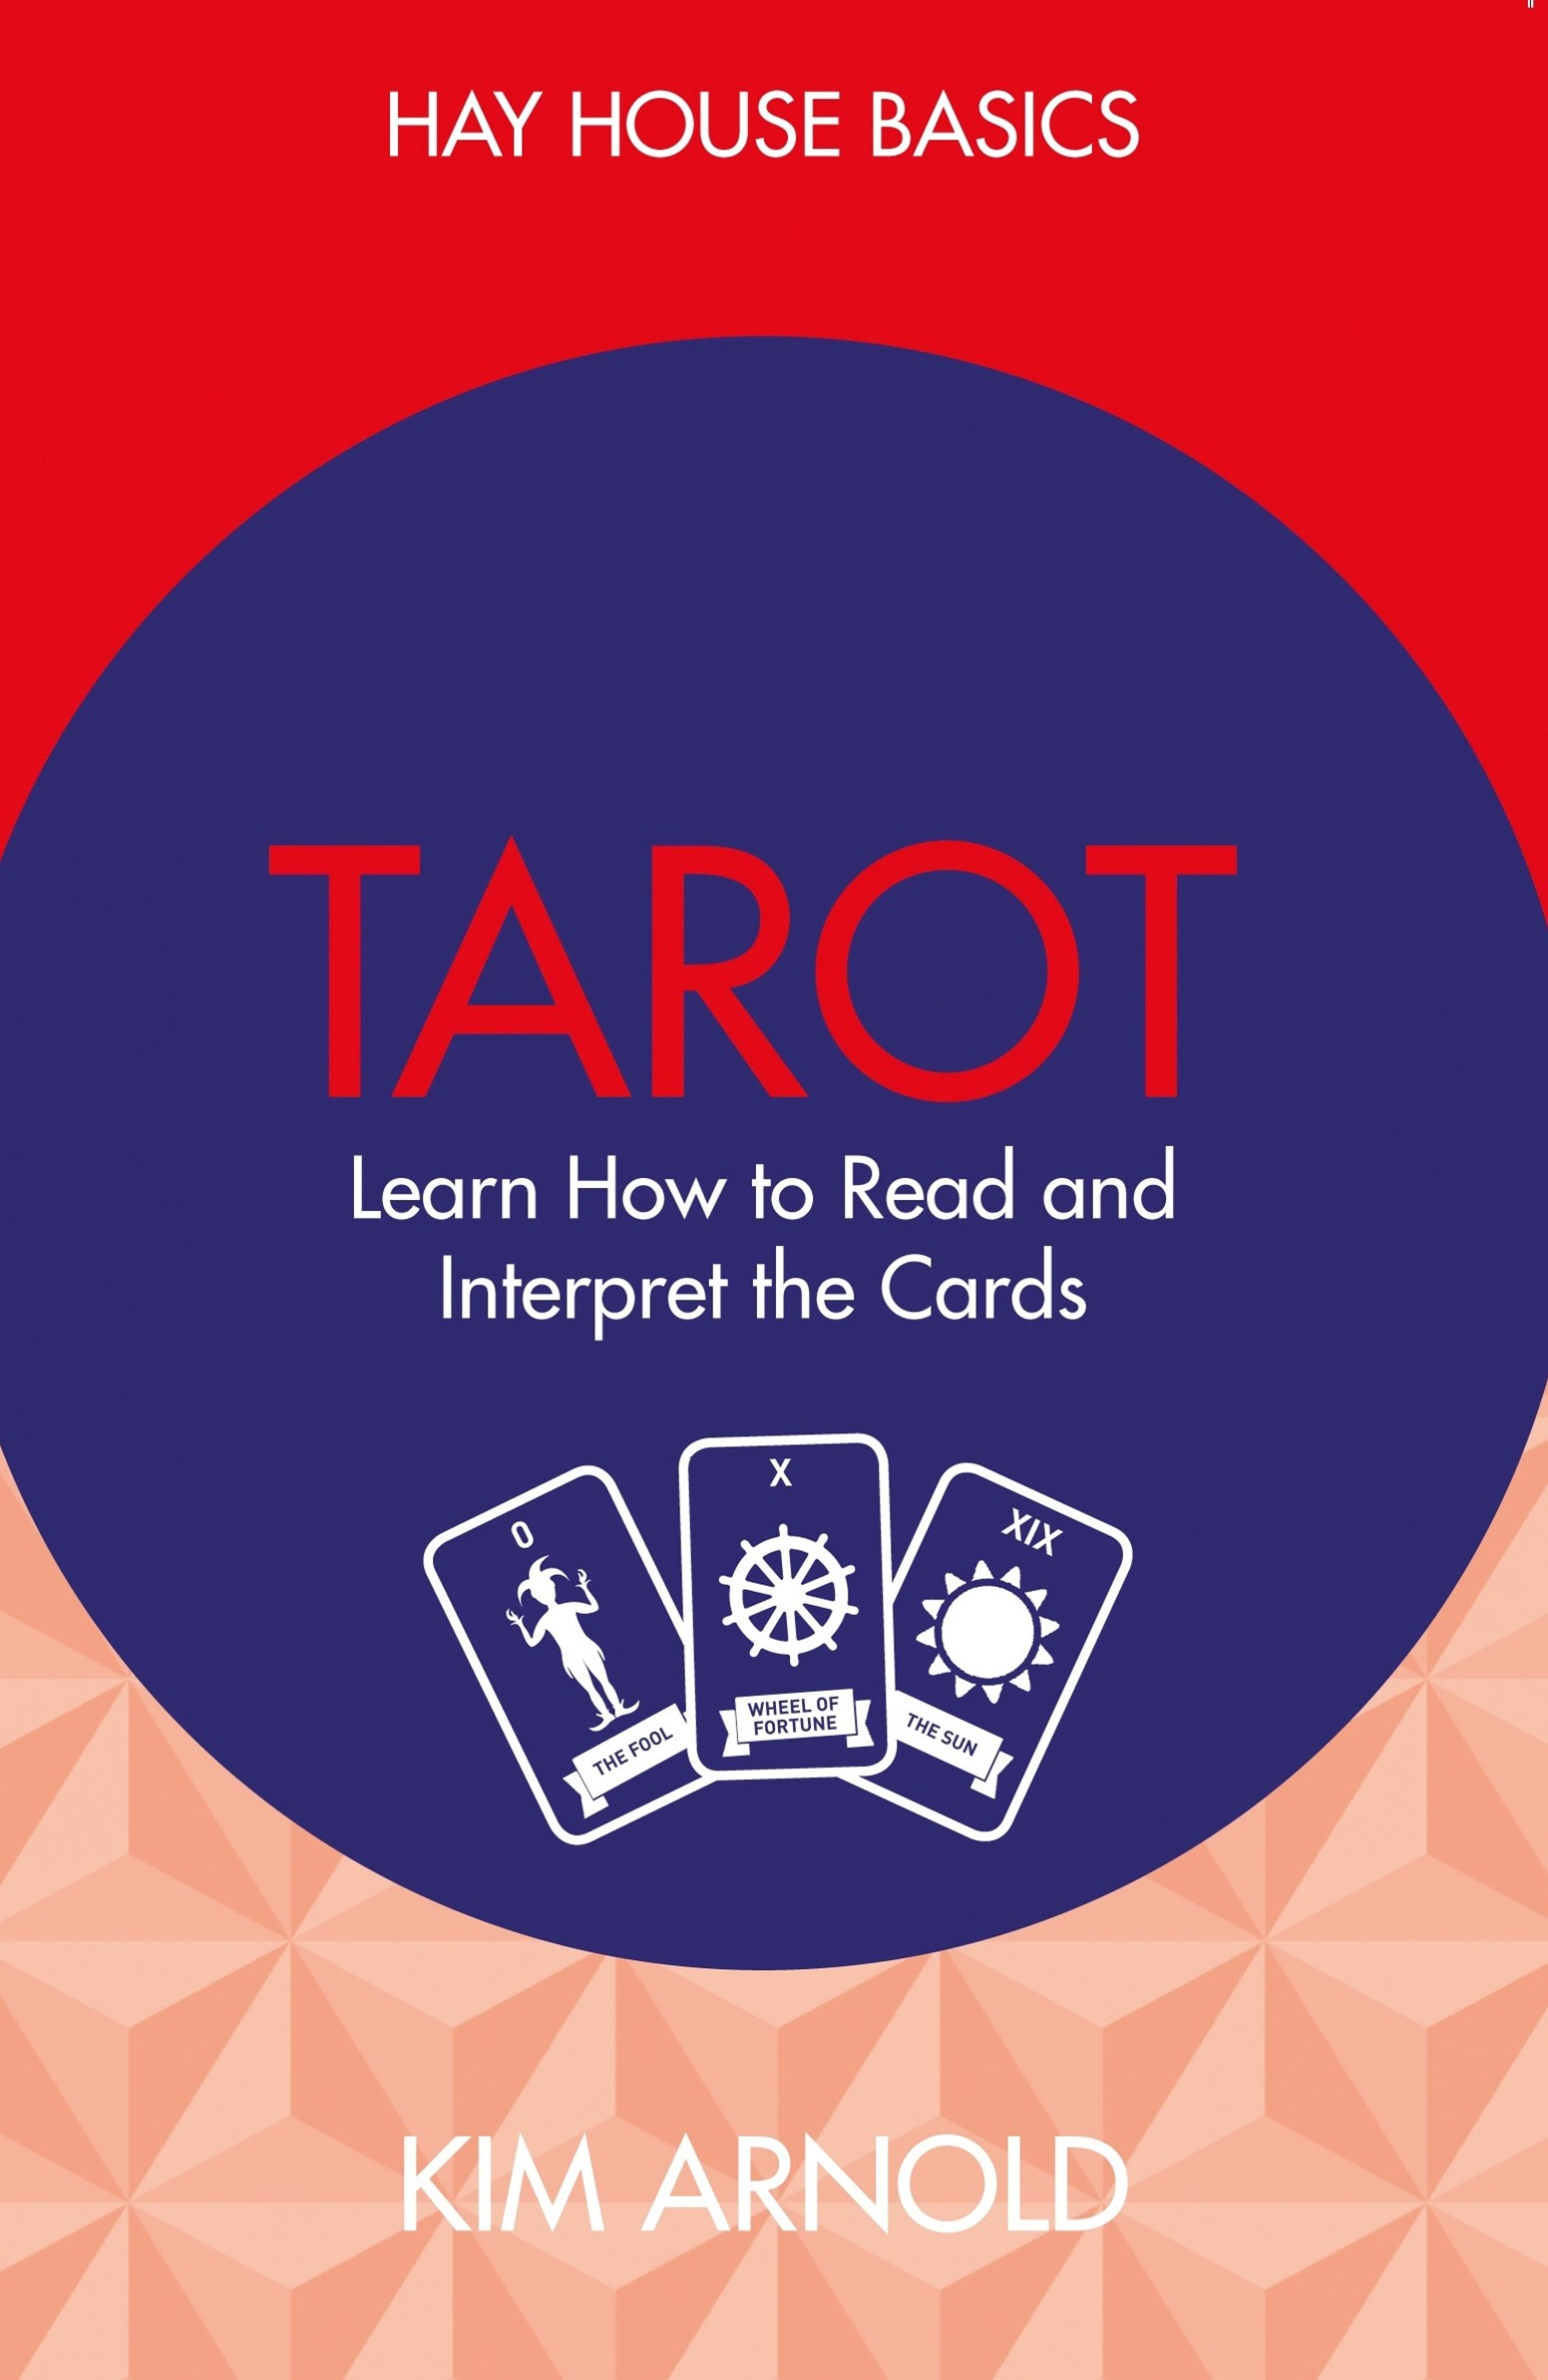 Tarot: Learn how to read and interpret the cards: Hay House Basics